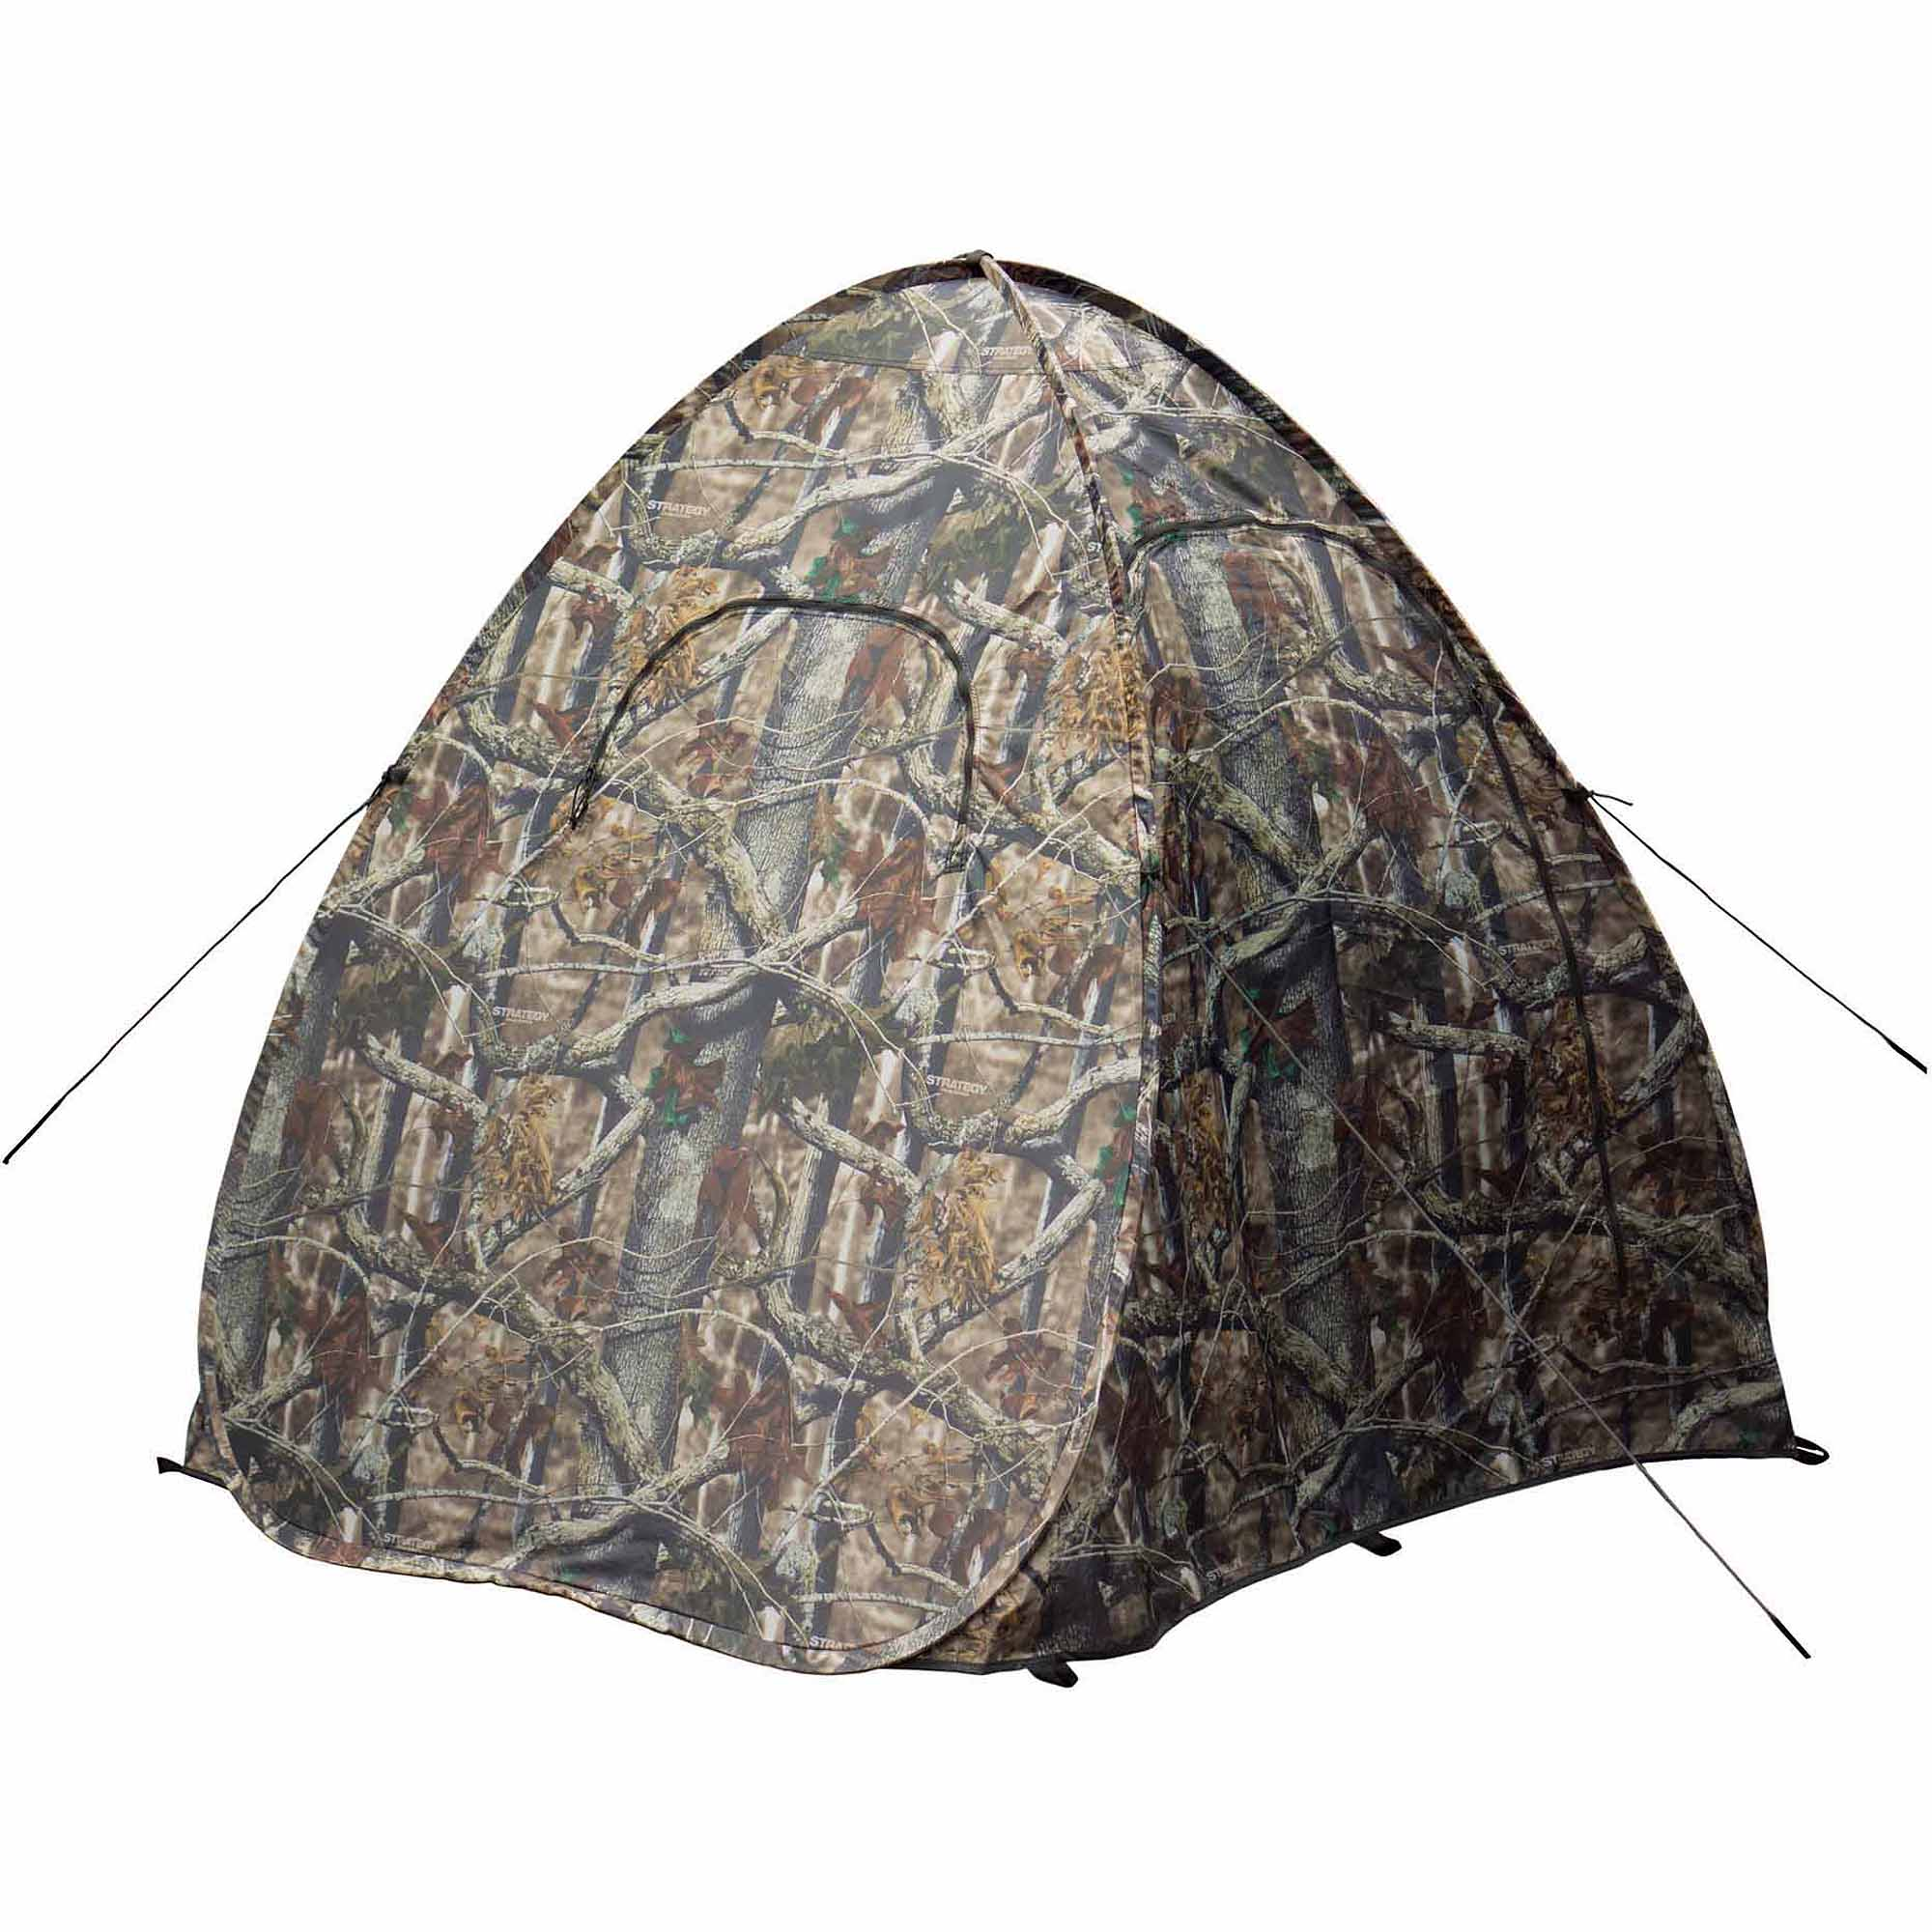 sc 1 st  Walmart & Pop-Up Ground Hunting Blind - Walmart.com